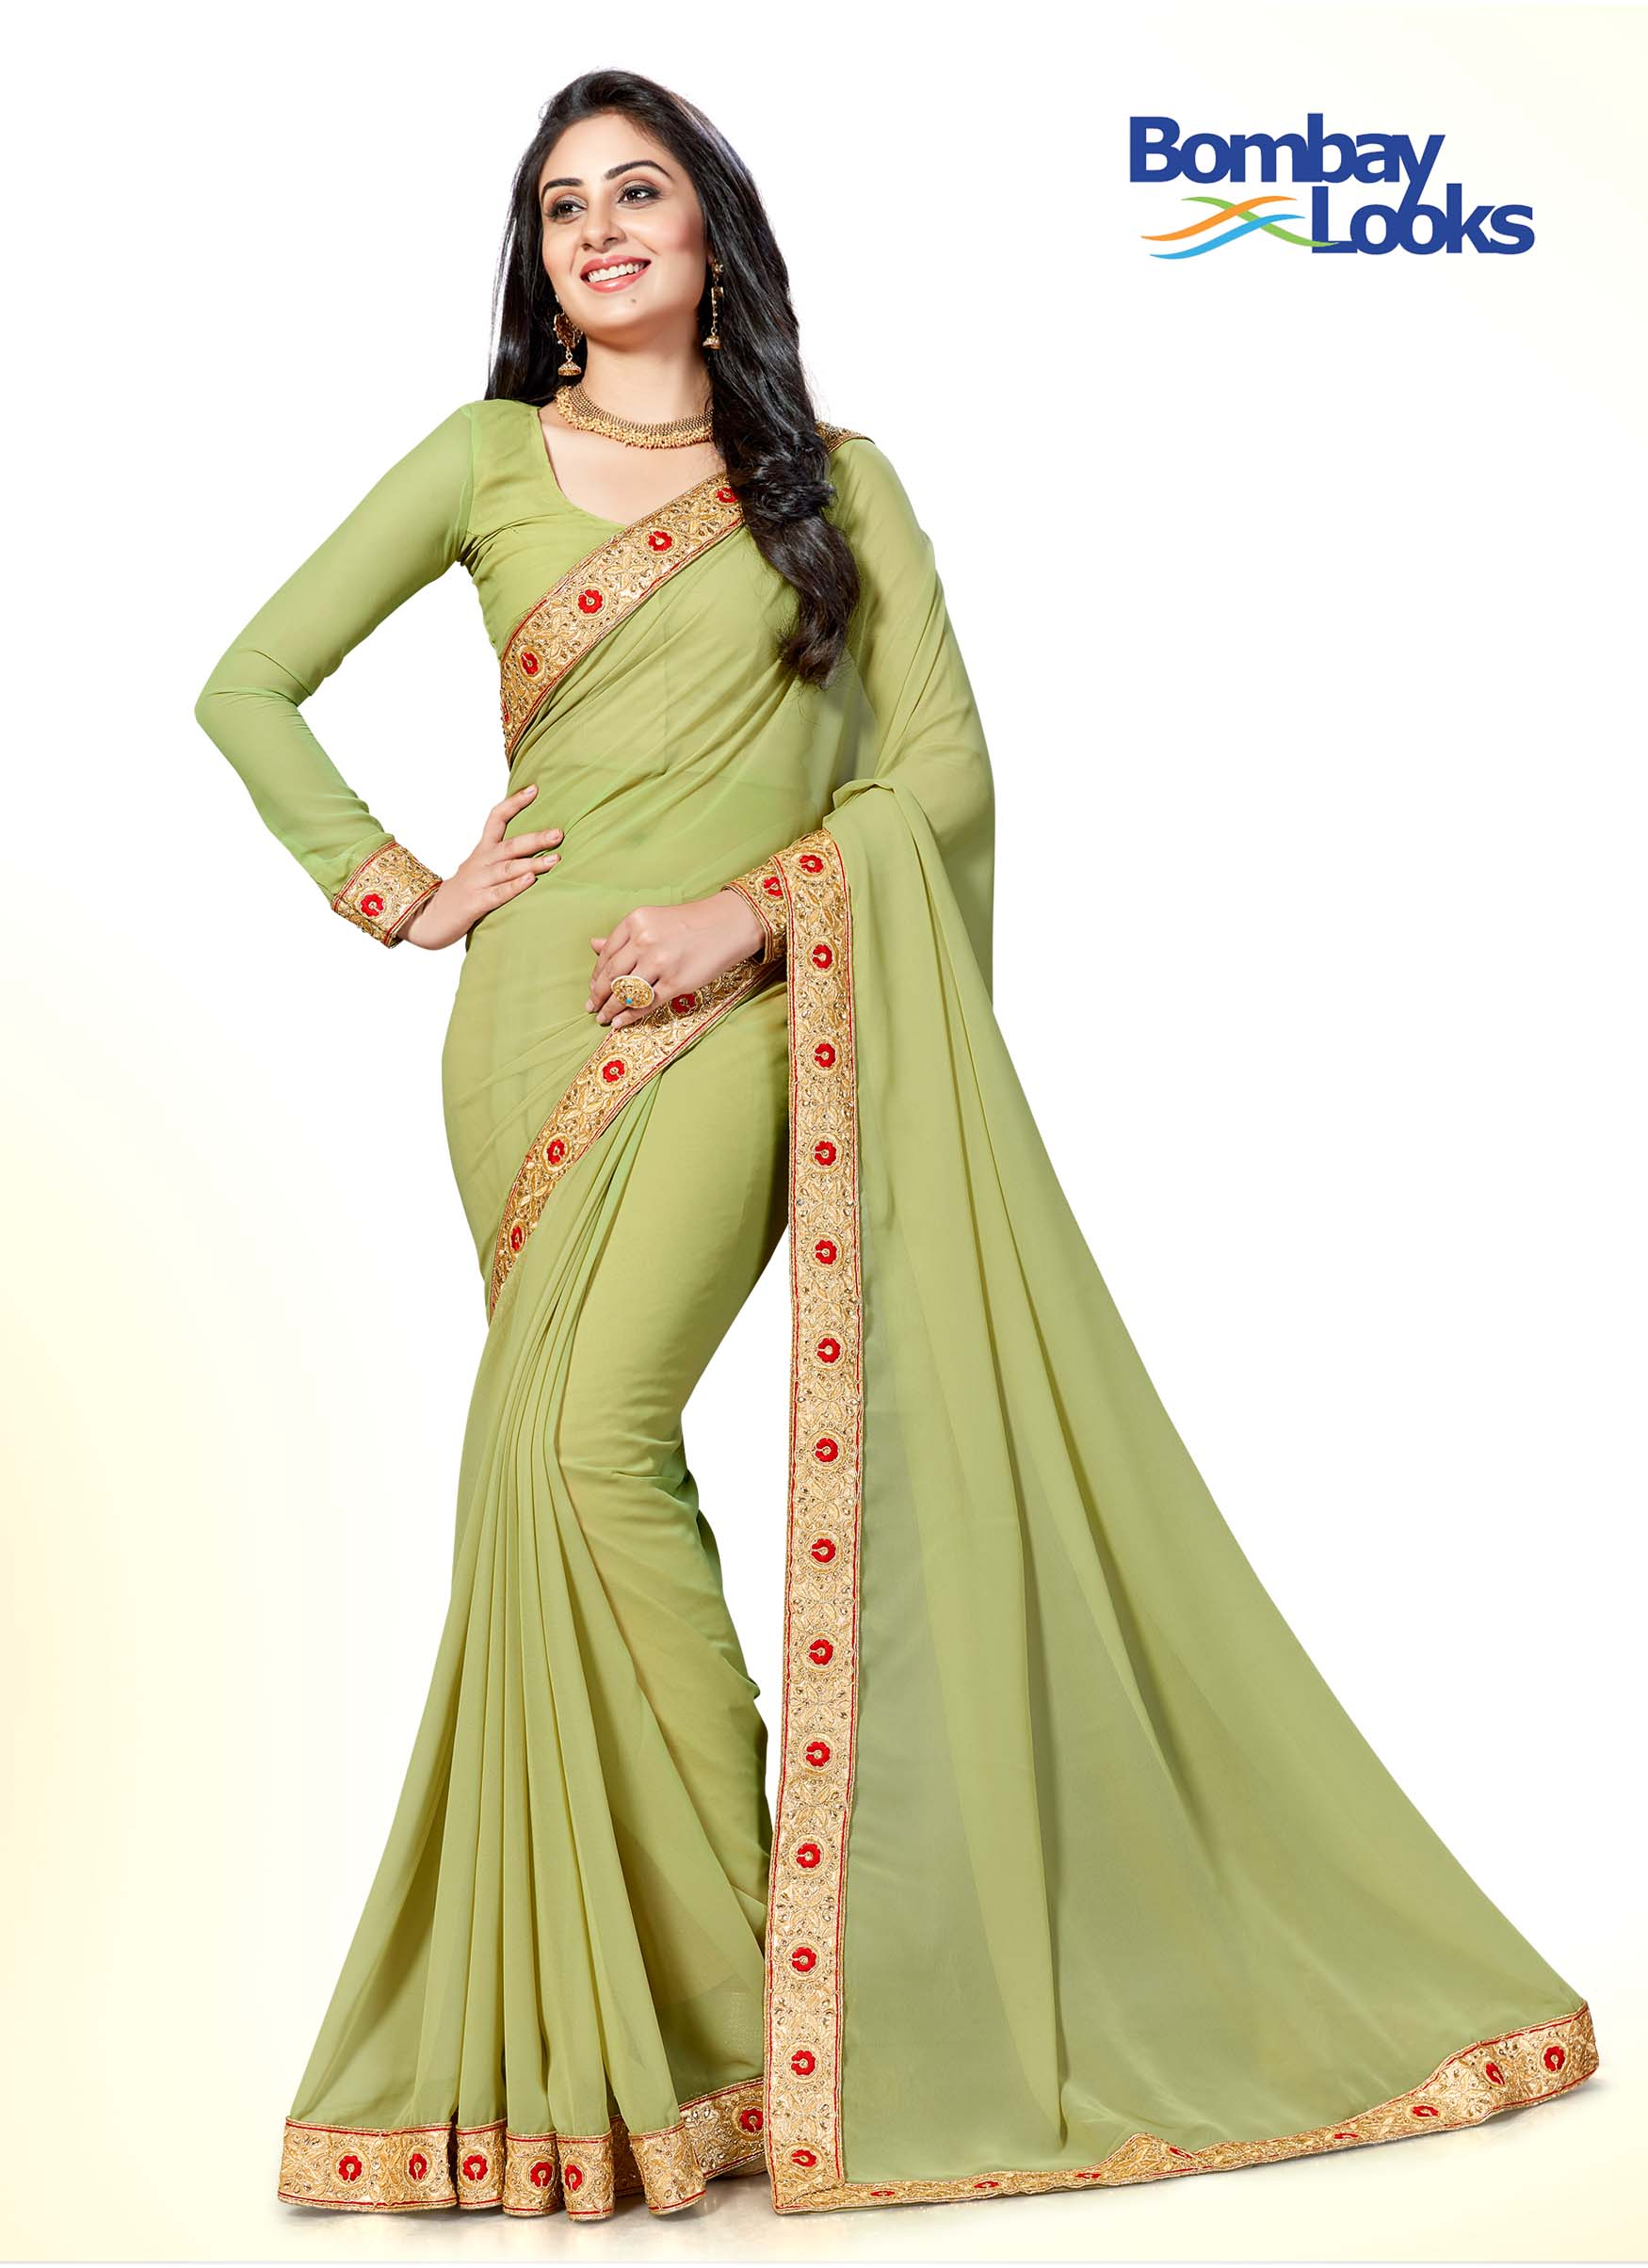 Olive green georgette saree having red rose embroidered border